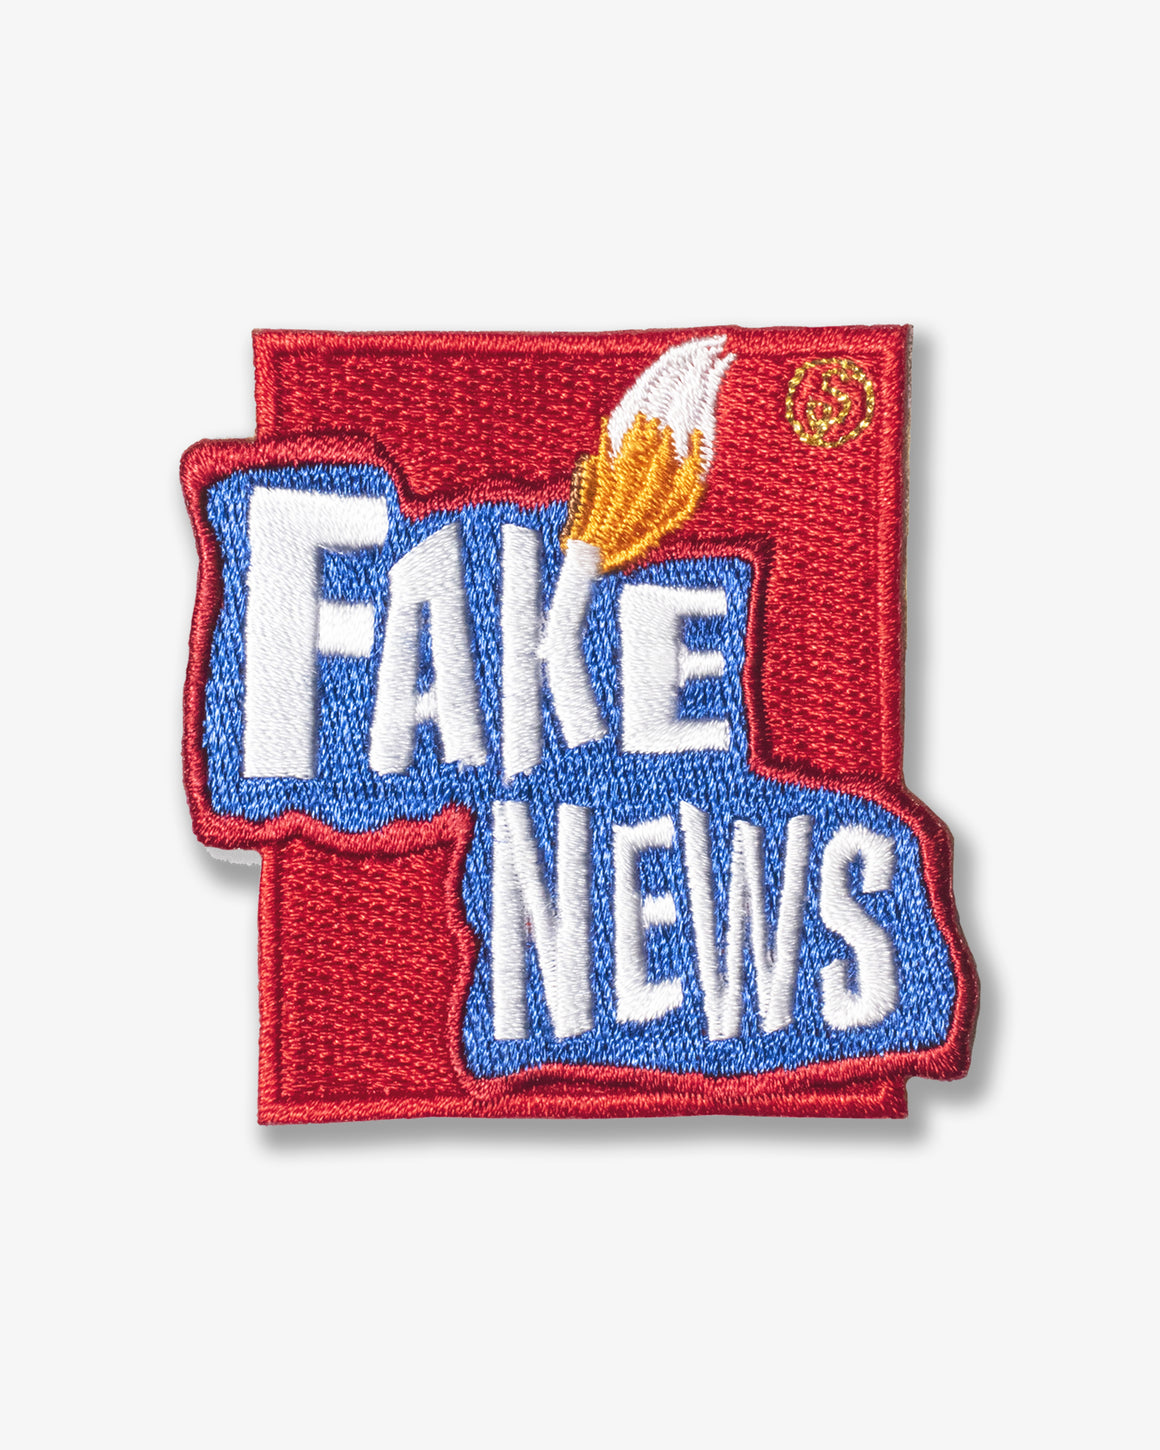 Fake News - Patch